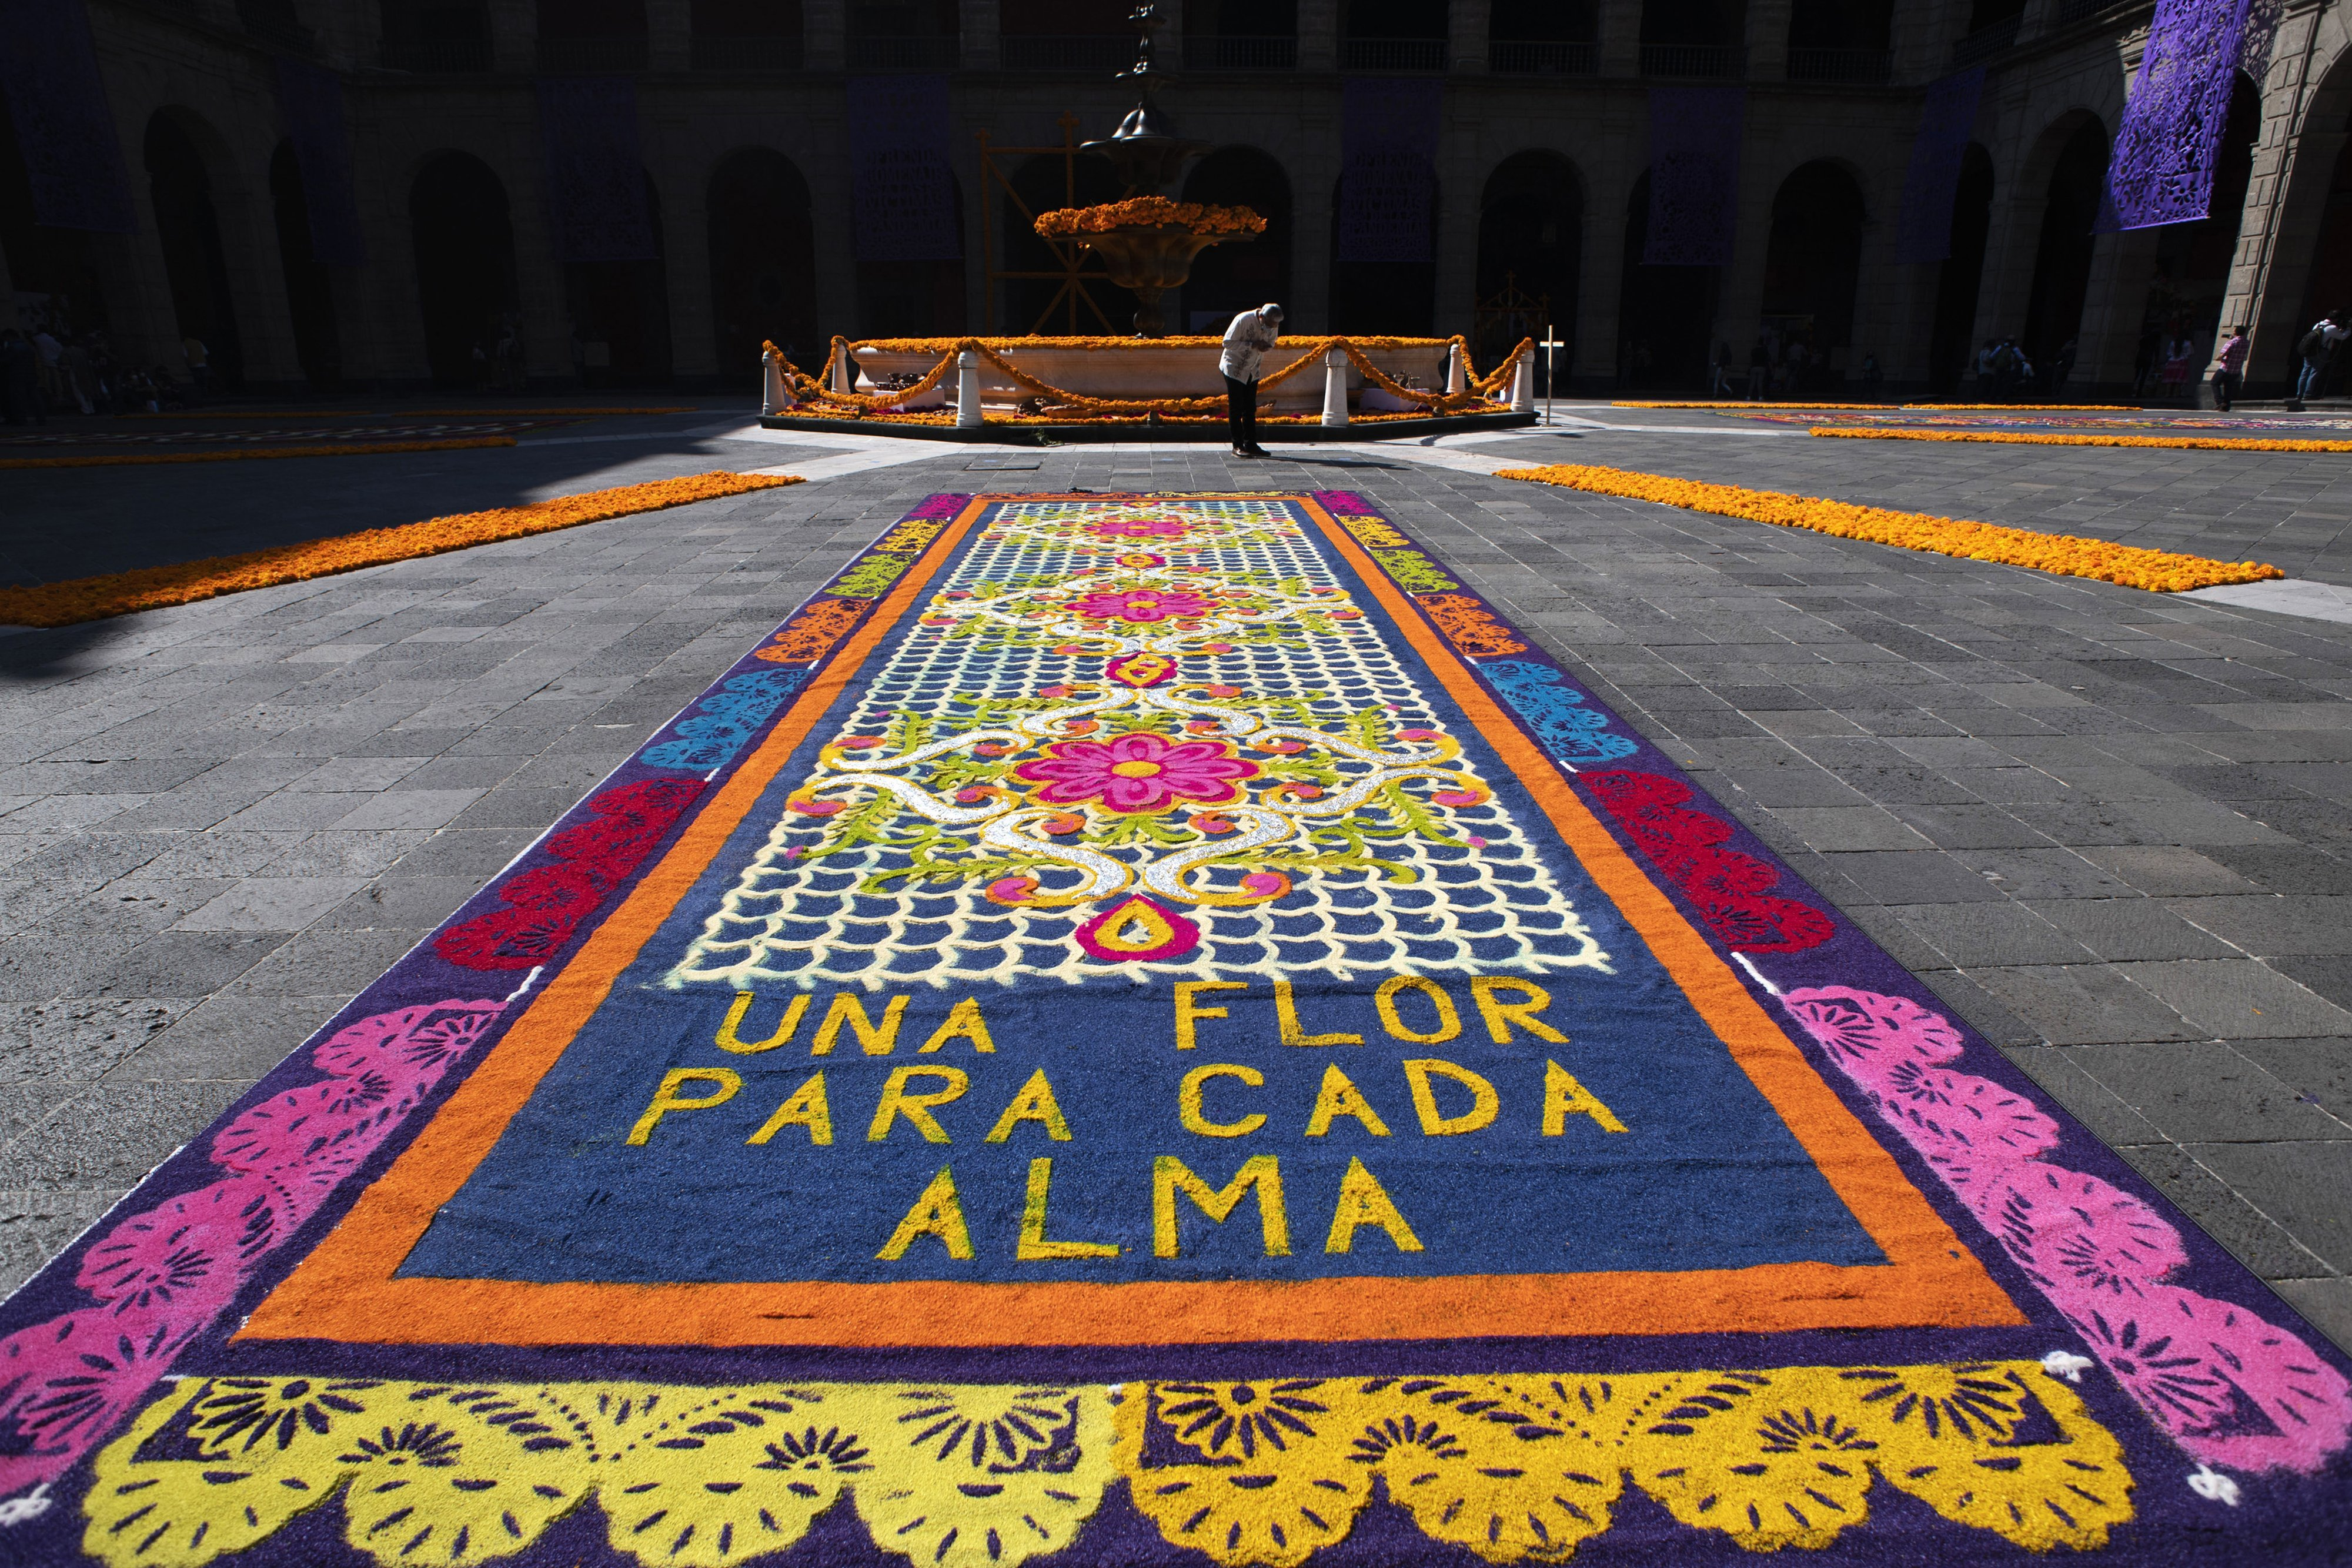 The central square of the National Palace has been filled with Cenpasuchil flowers, the traditional flower of the day of the dead, and the four directions have been drawn with coloured sawdust, to commemorate those who have died of Covid